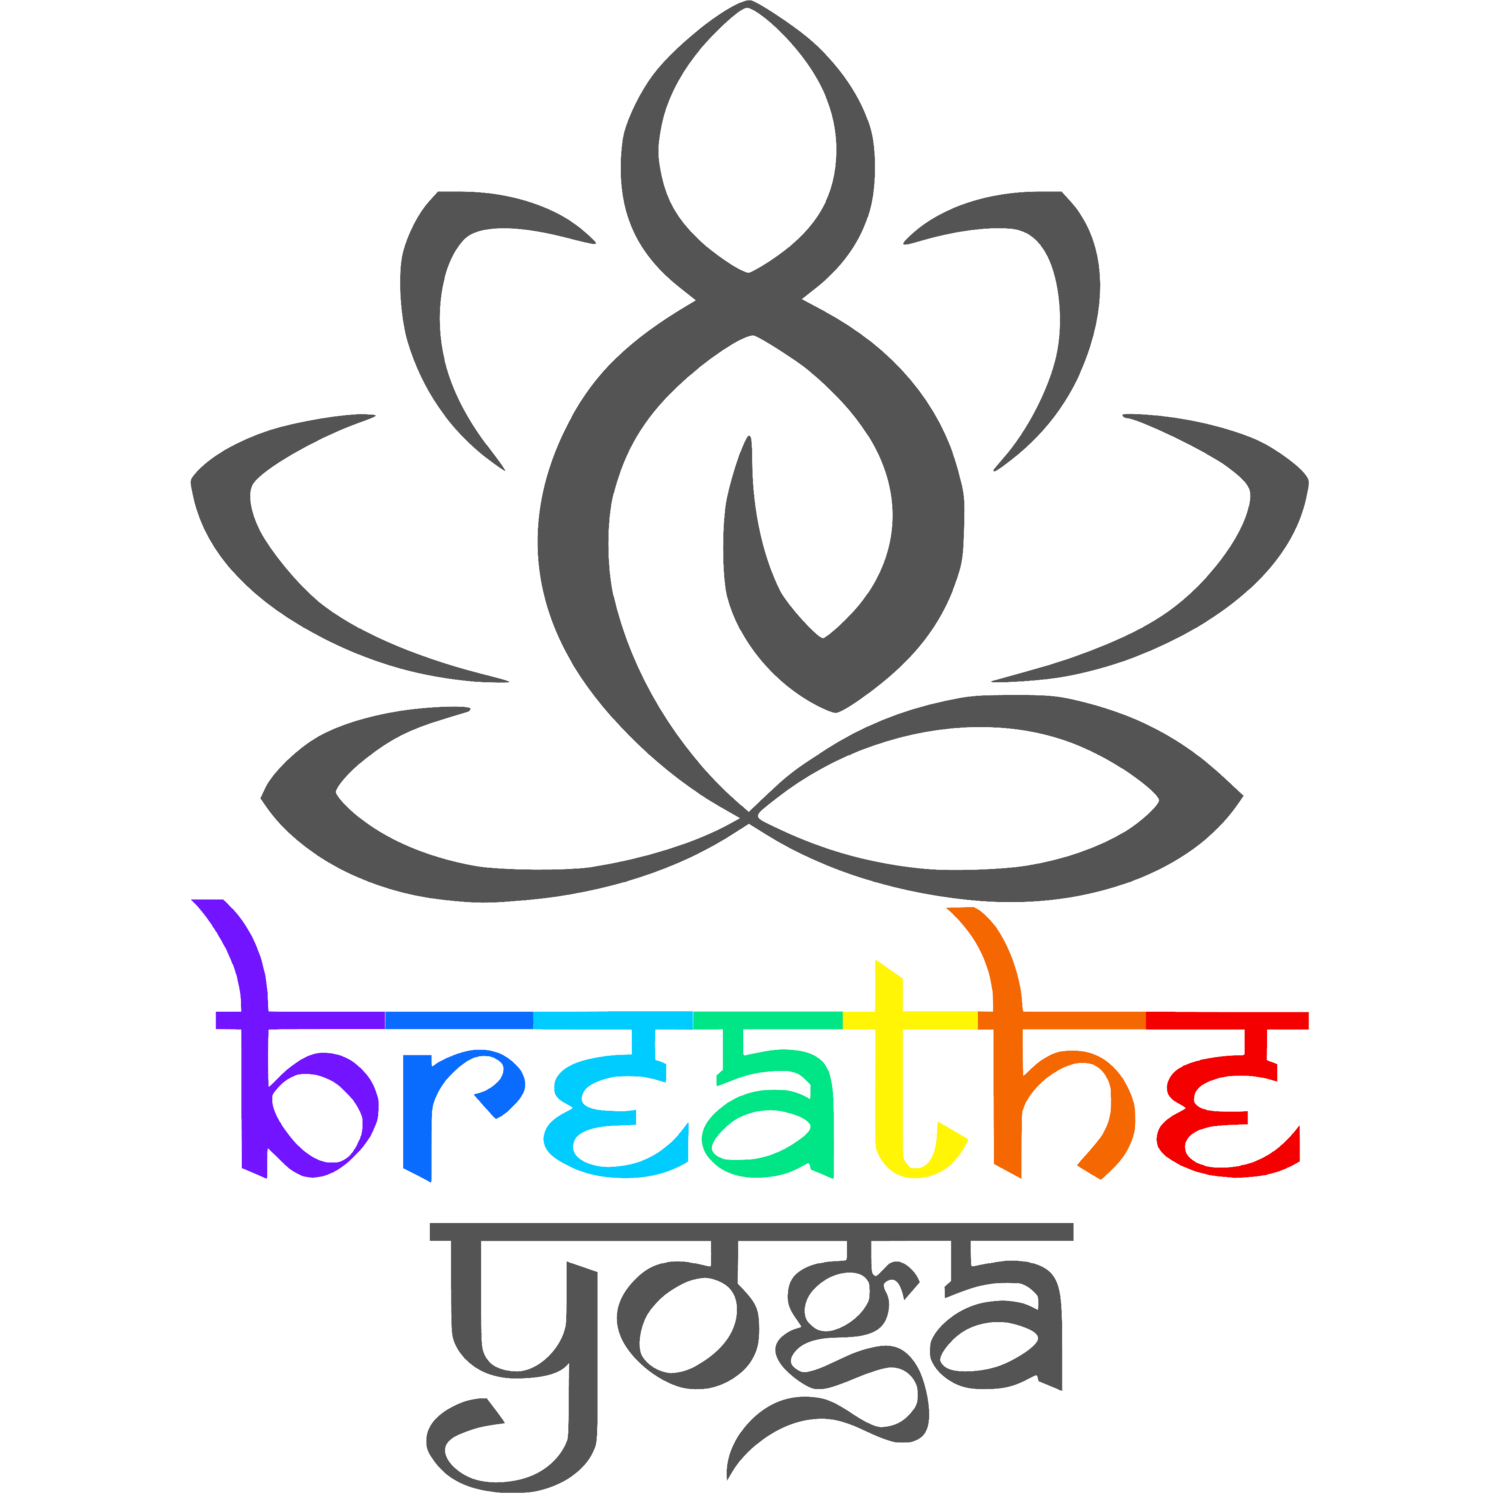 Breathe Yoga Tucson